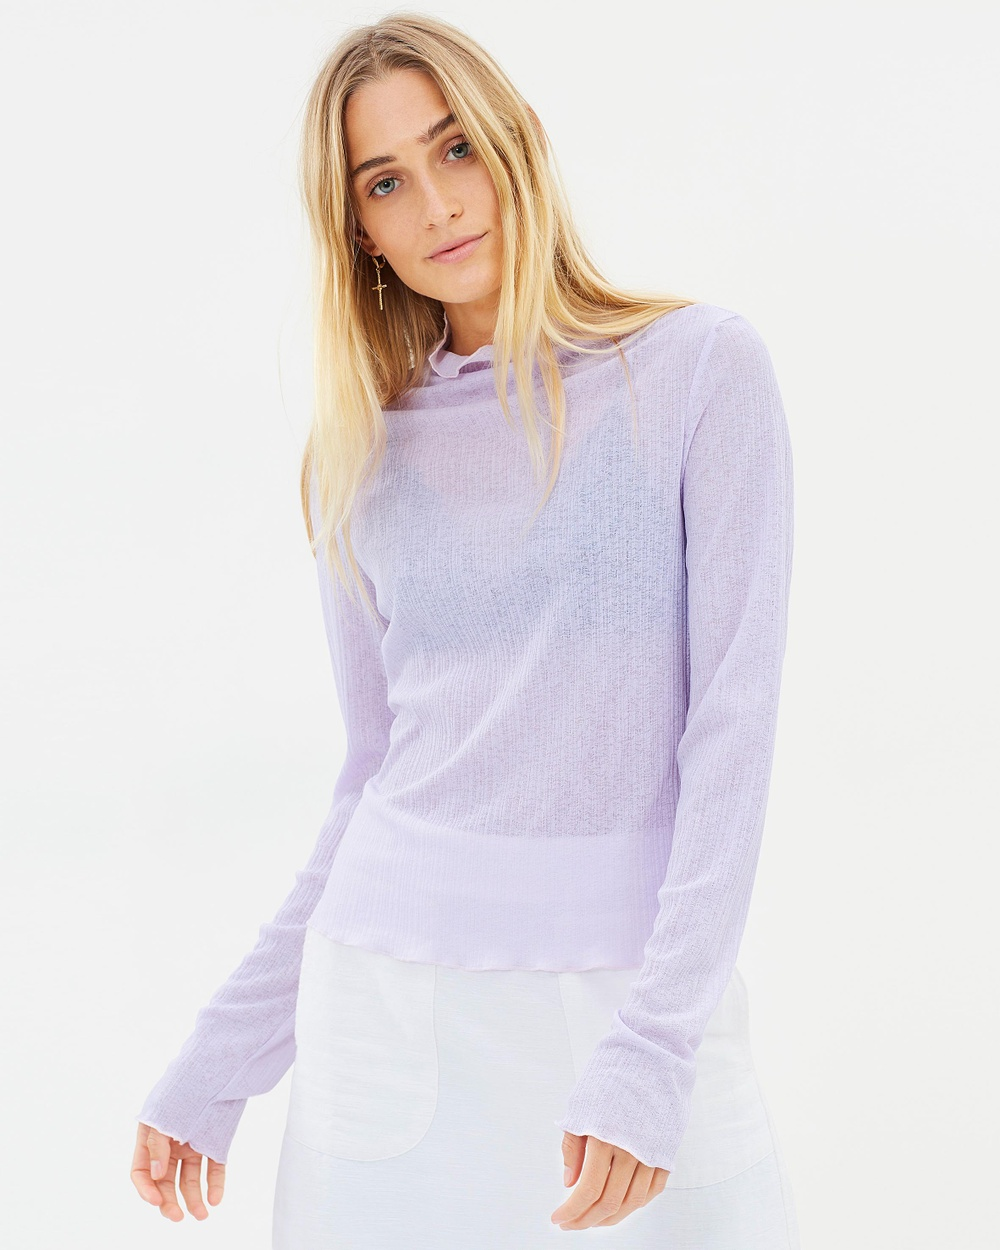 The East Order Effie Top Tops Lilac Effie Top